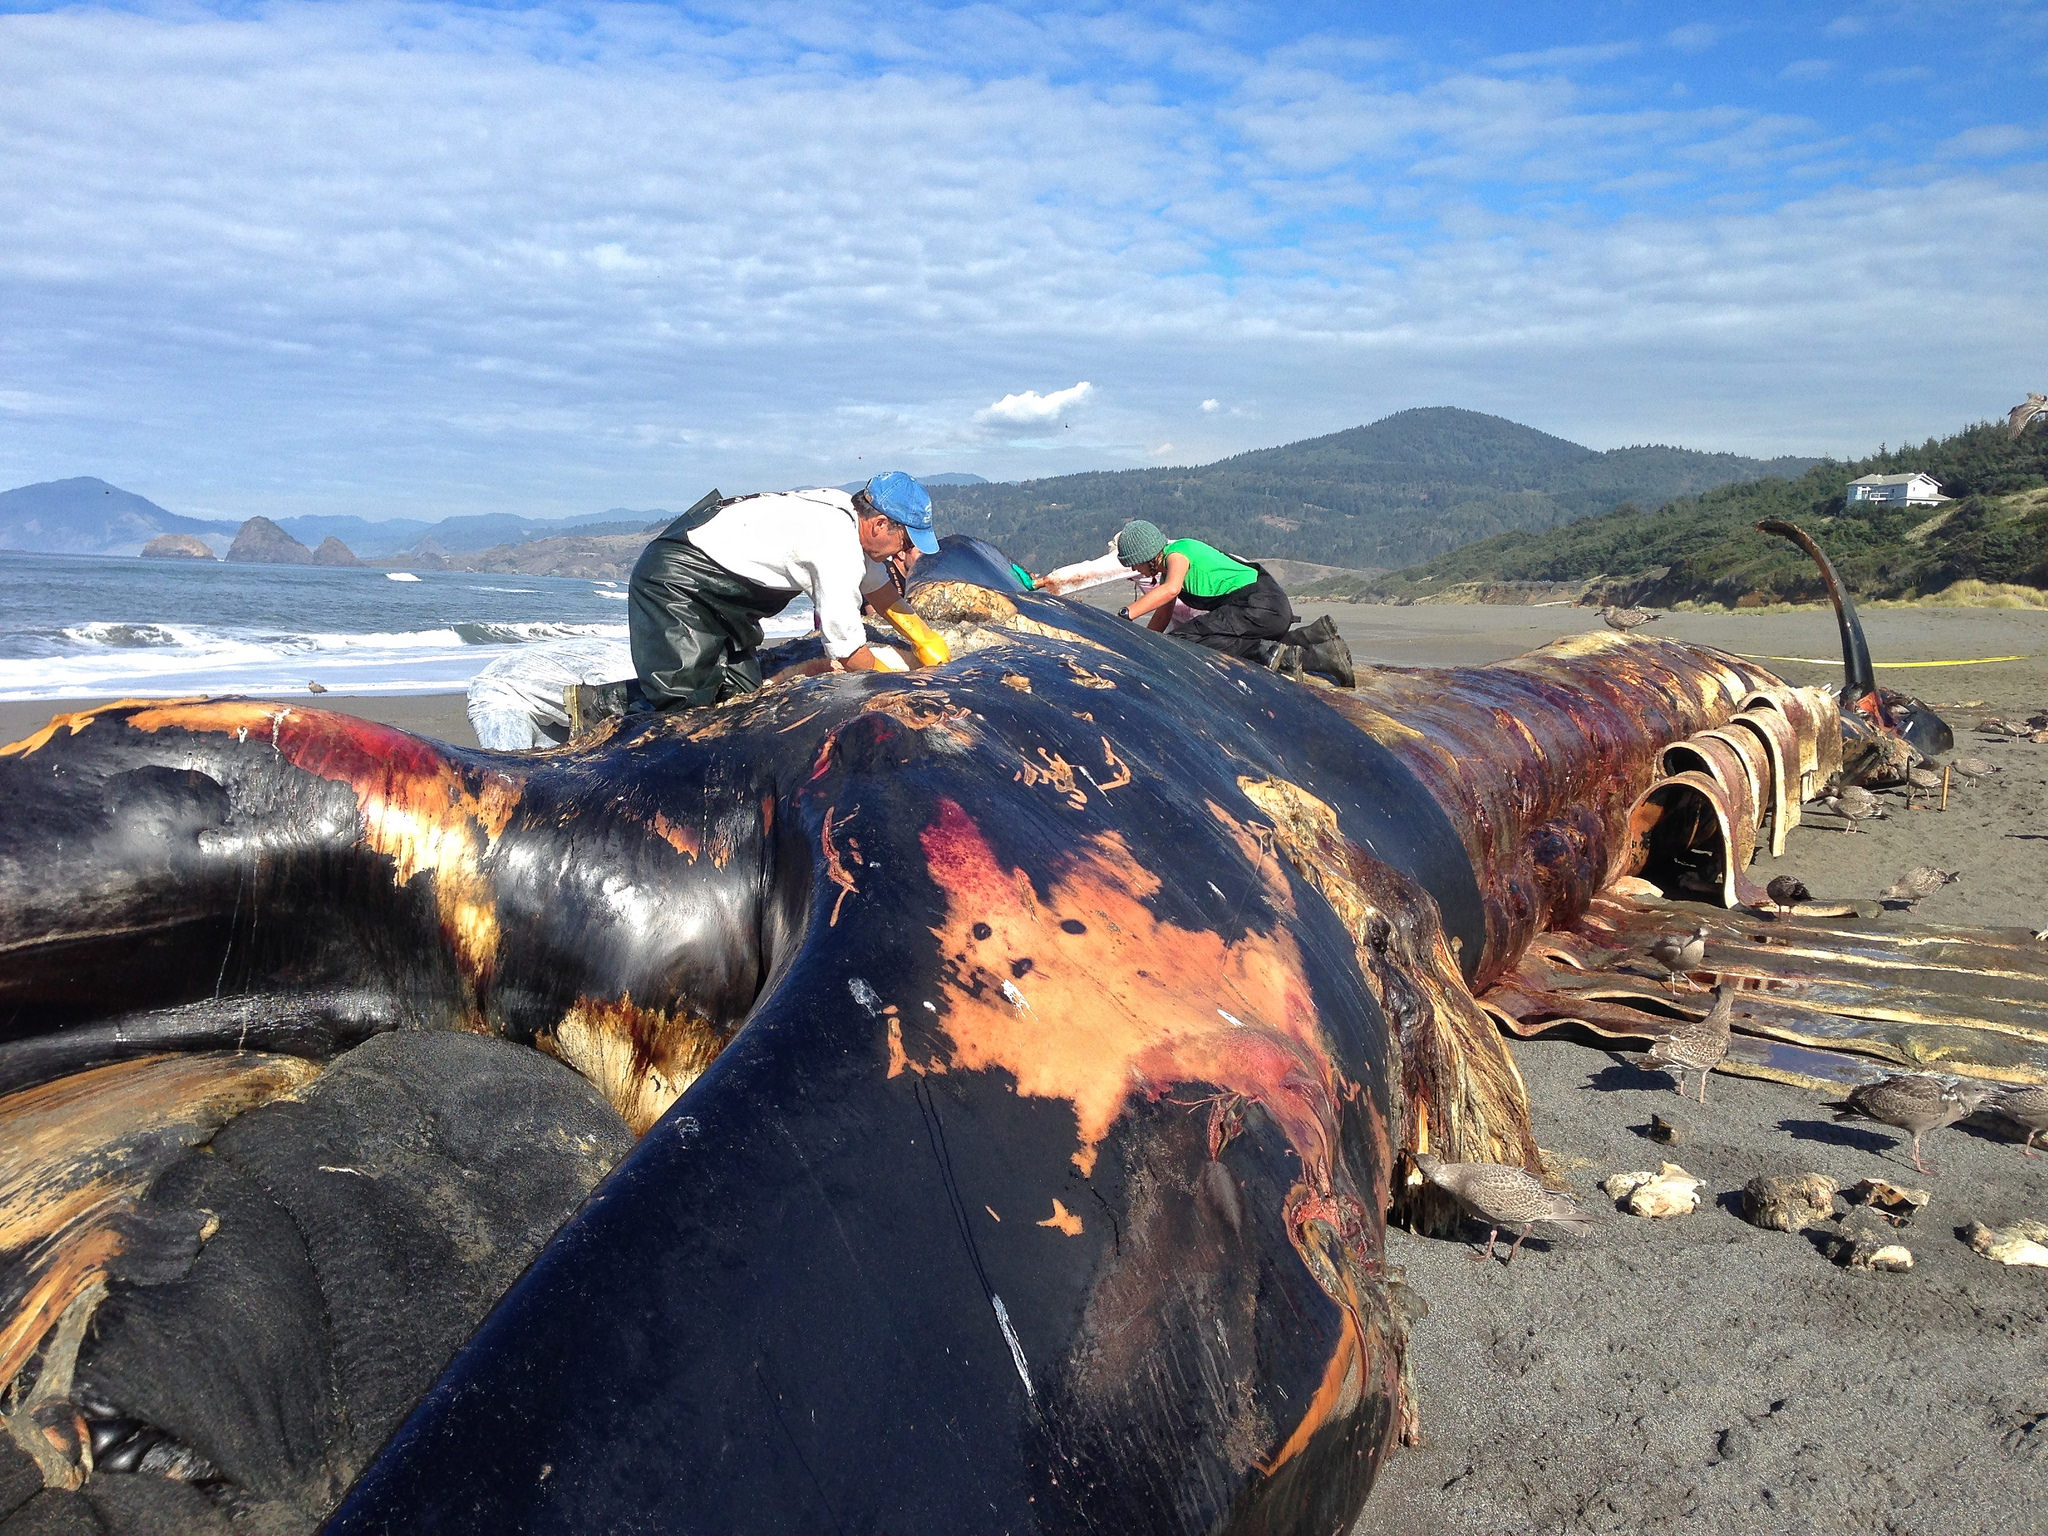 A 78-foot blue whale that washed ashore in November 2015 near Gold Beach, Oregon. (OSU/CC by 2.0)<p></p>